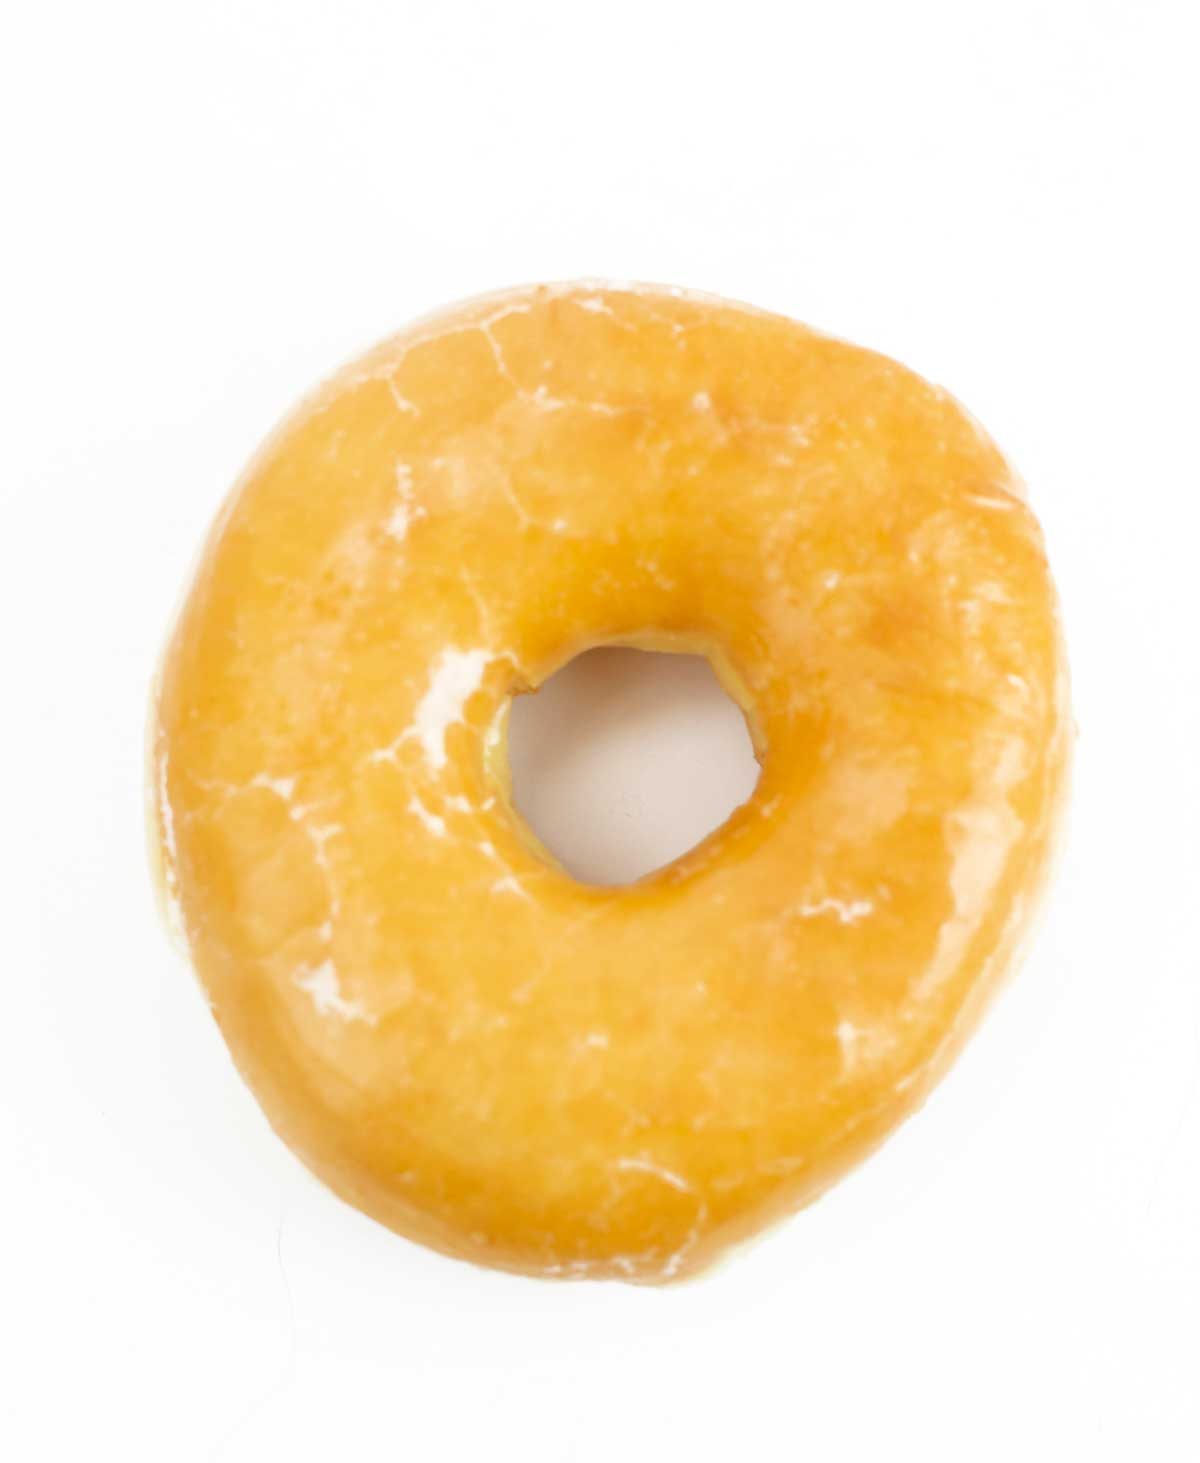 Picture of glazed donut from Paul's